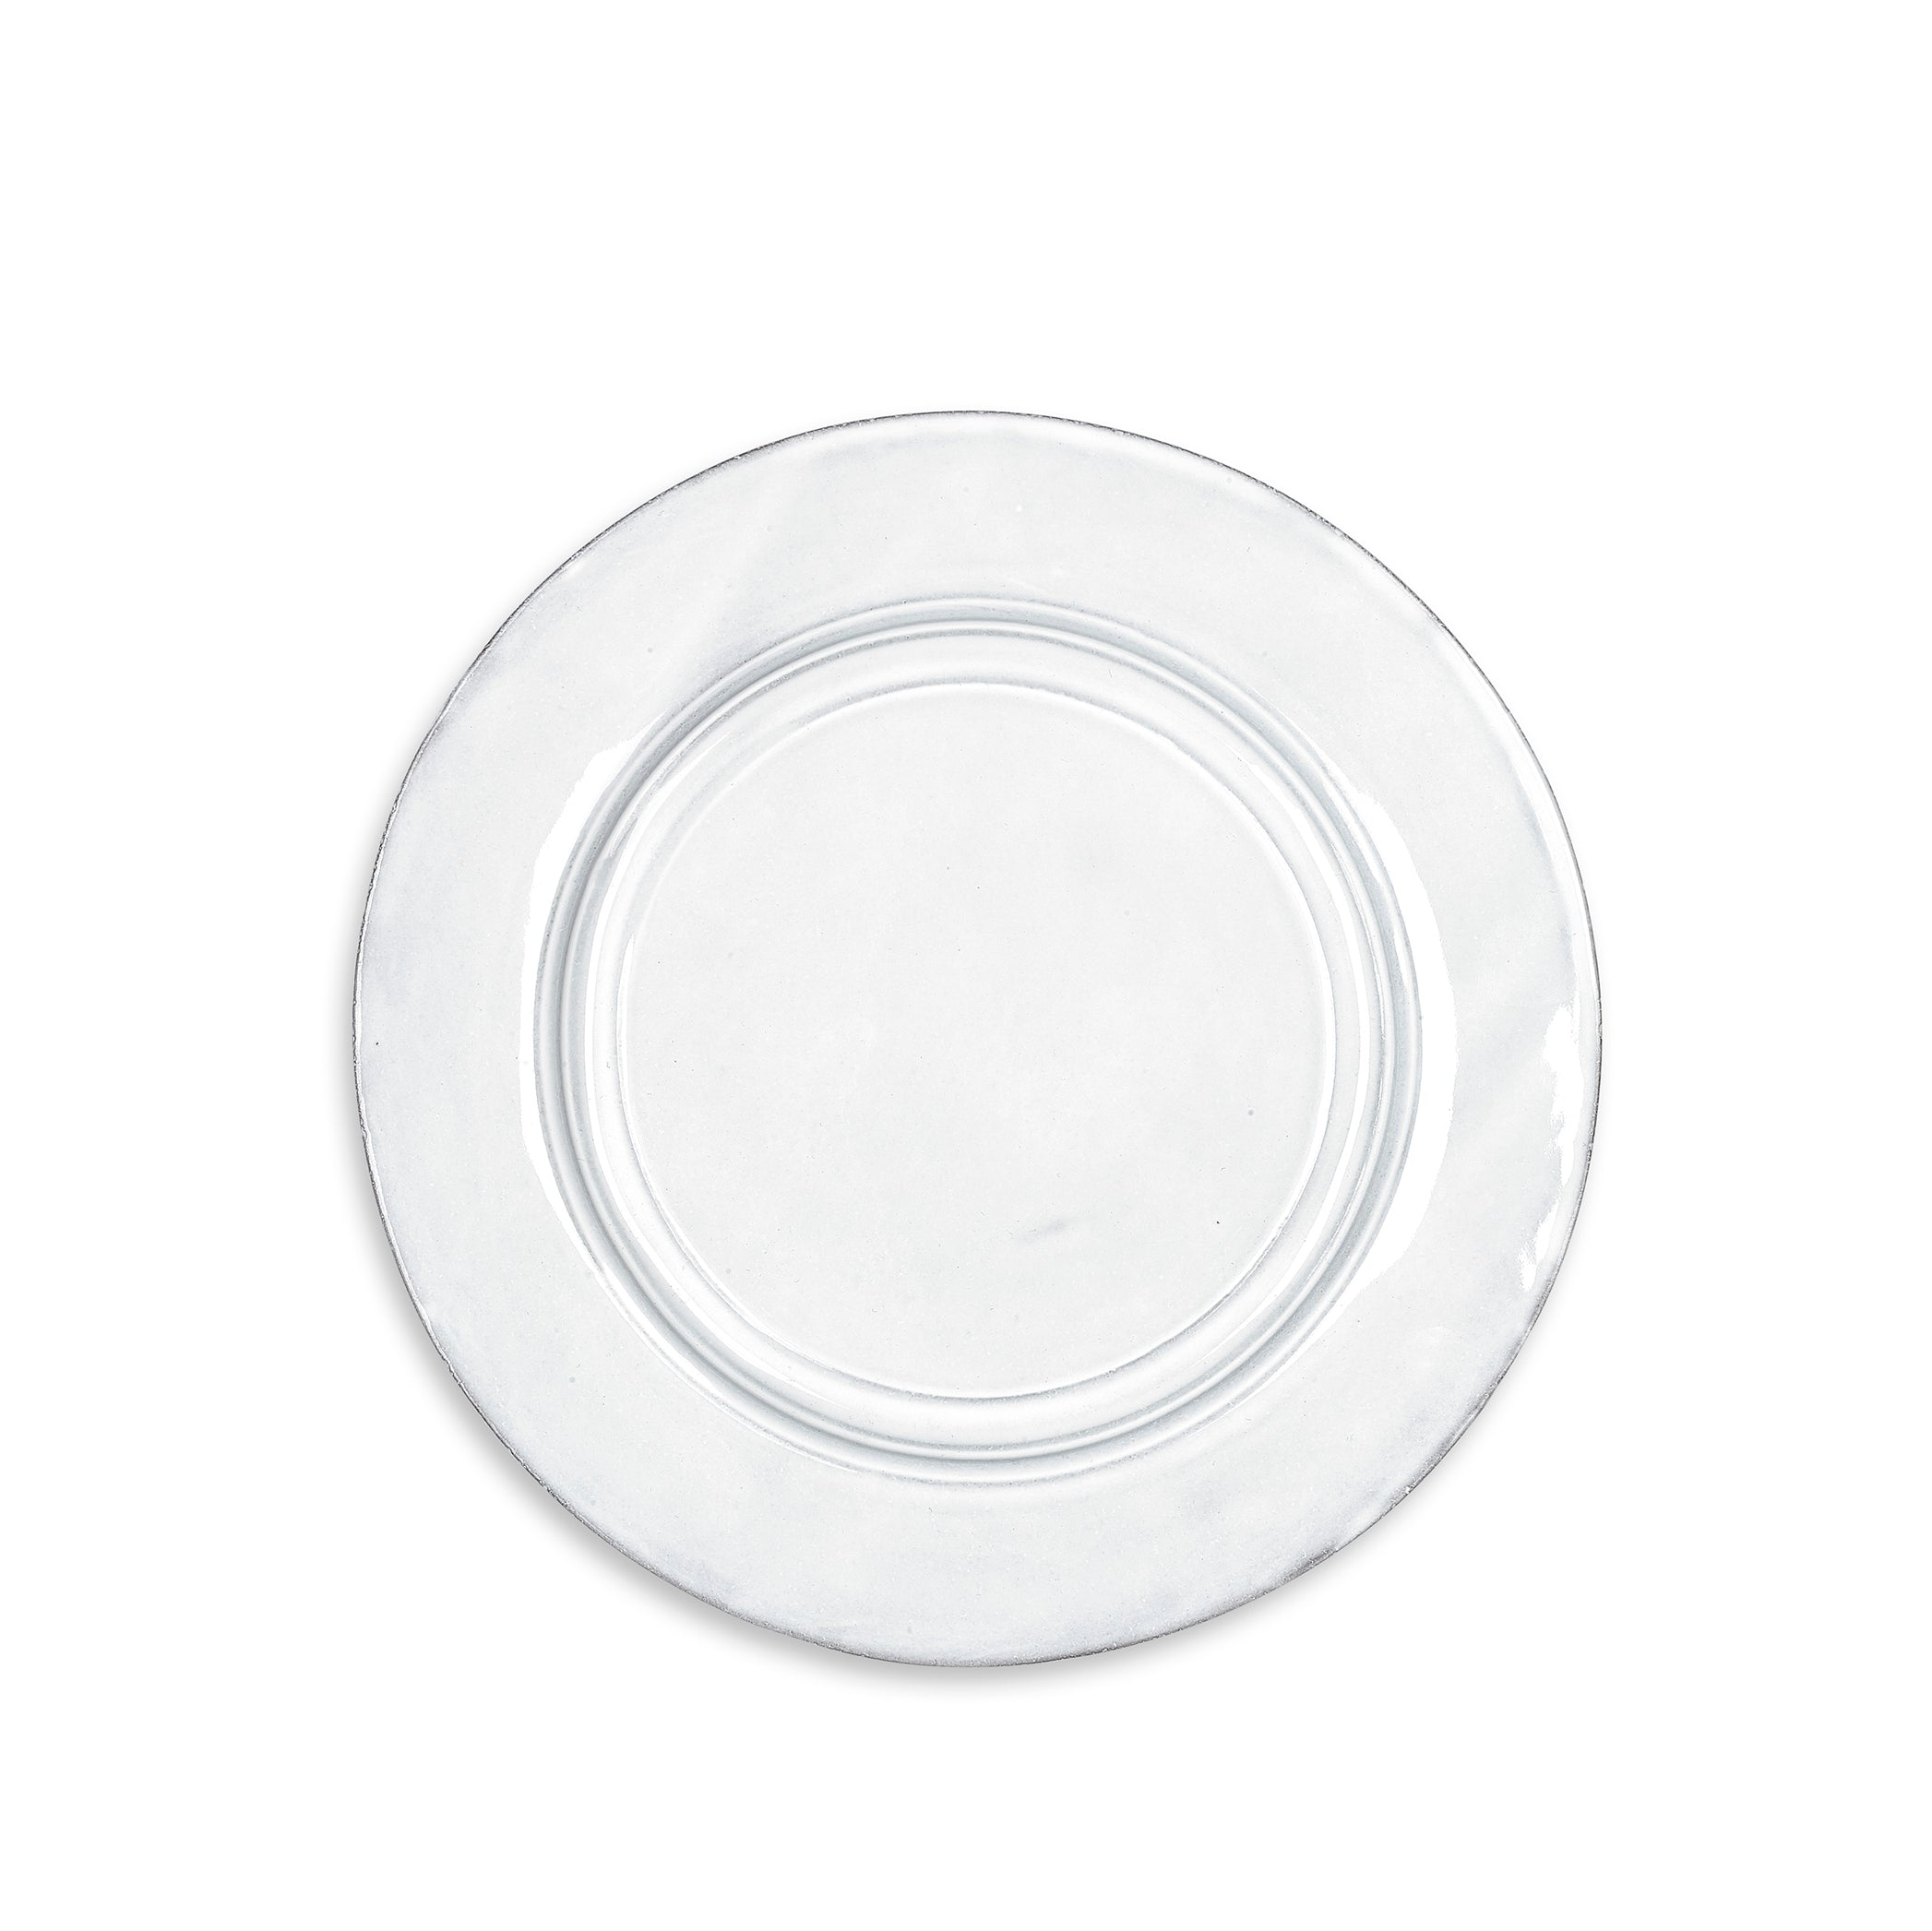 Grand Chalet Dinner Plate by Astier de Villatte